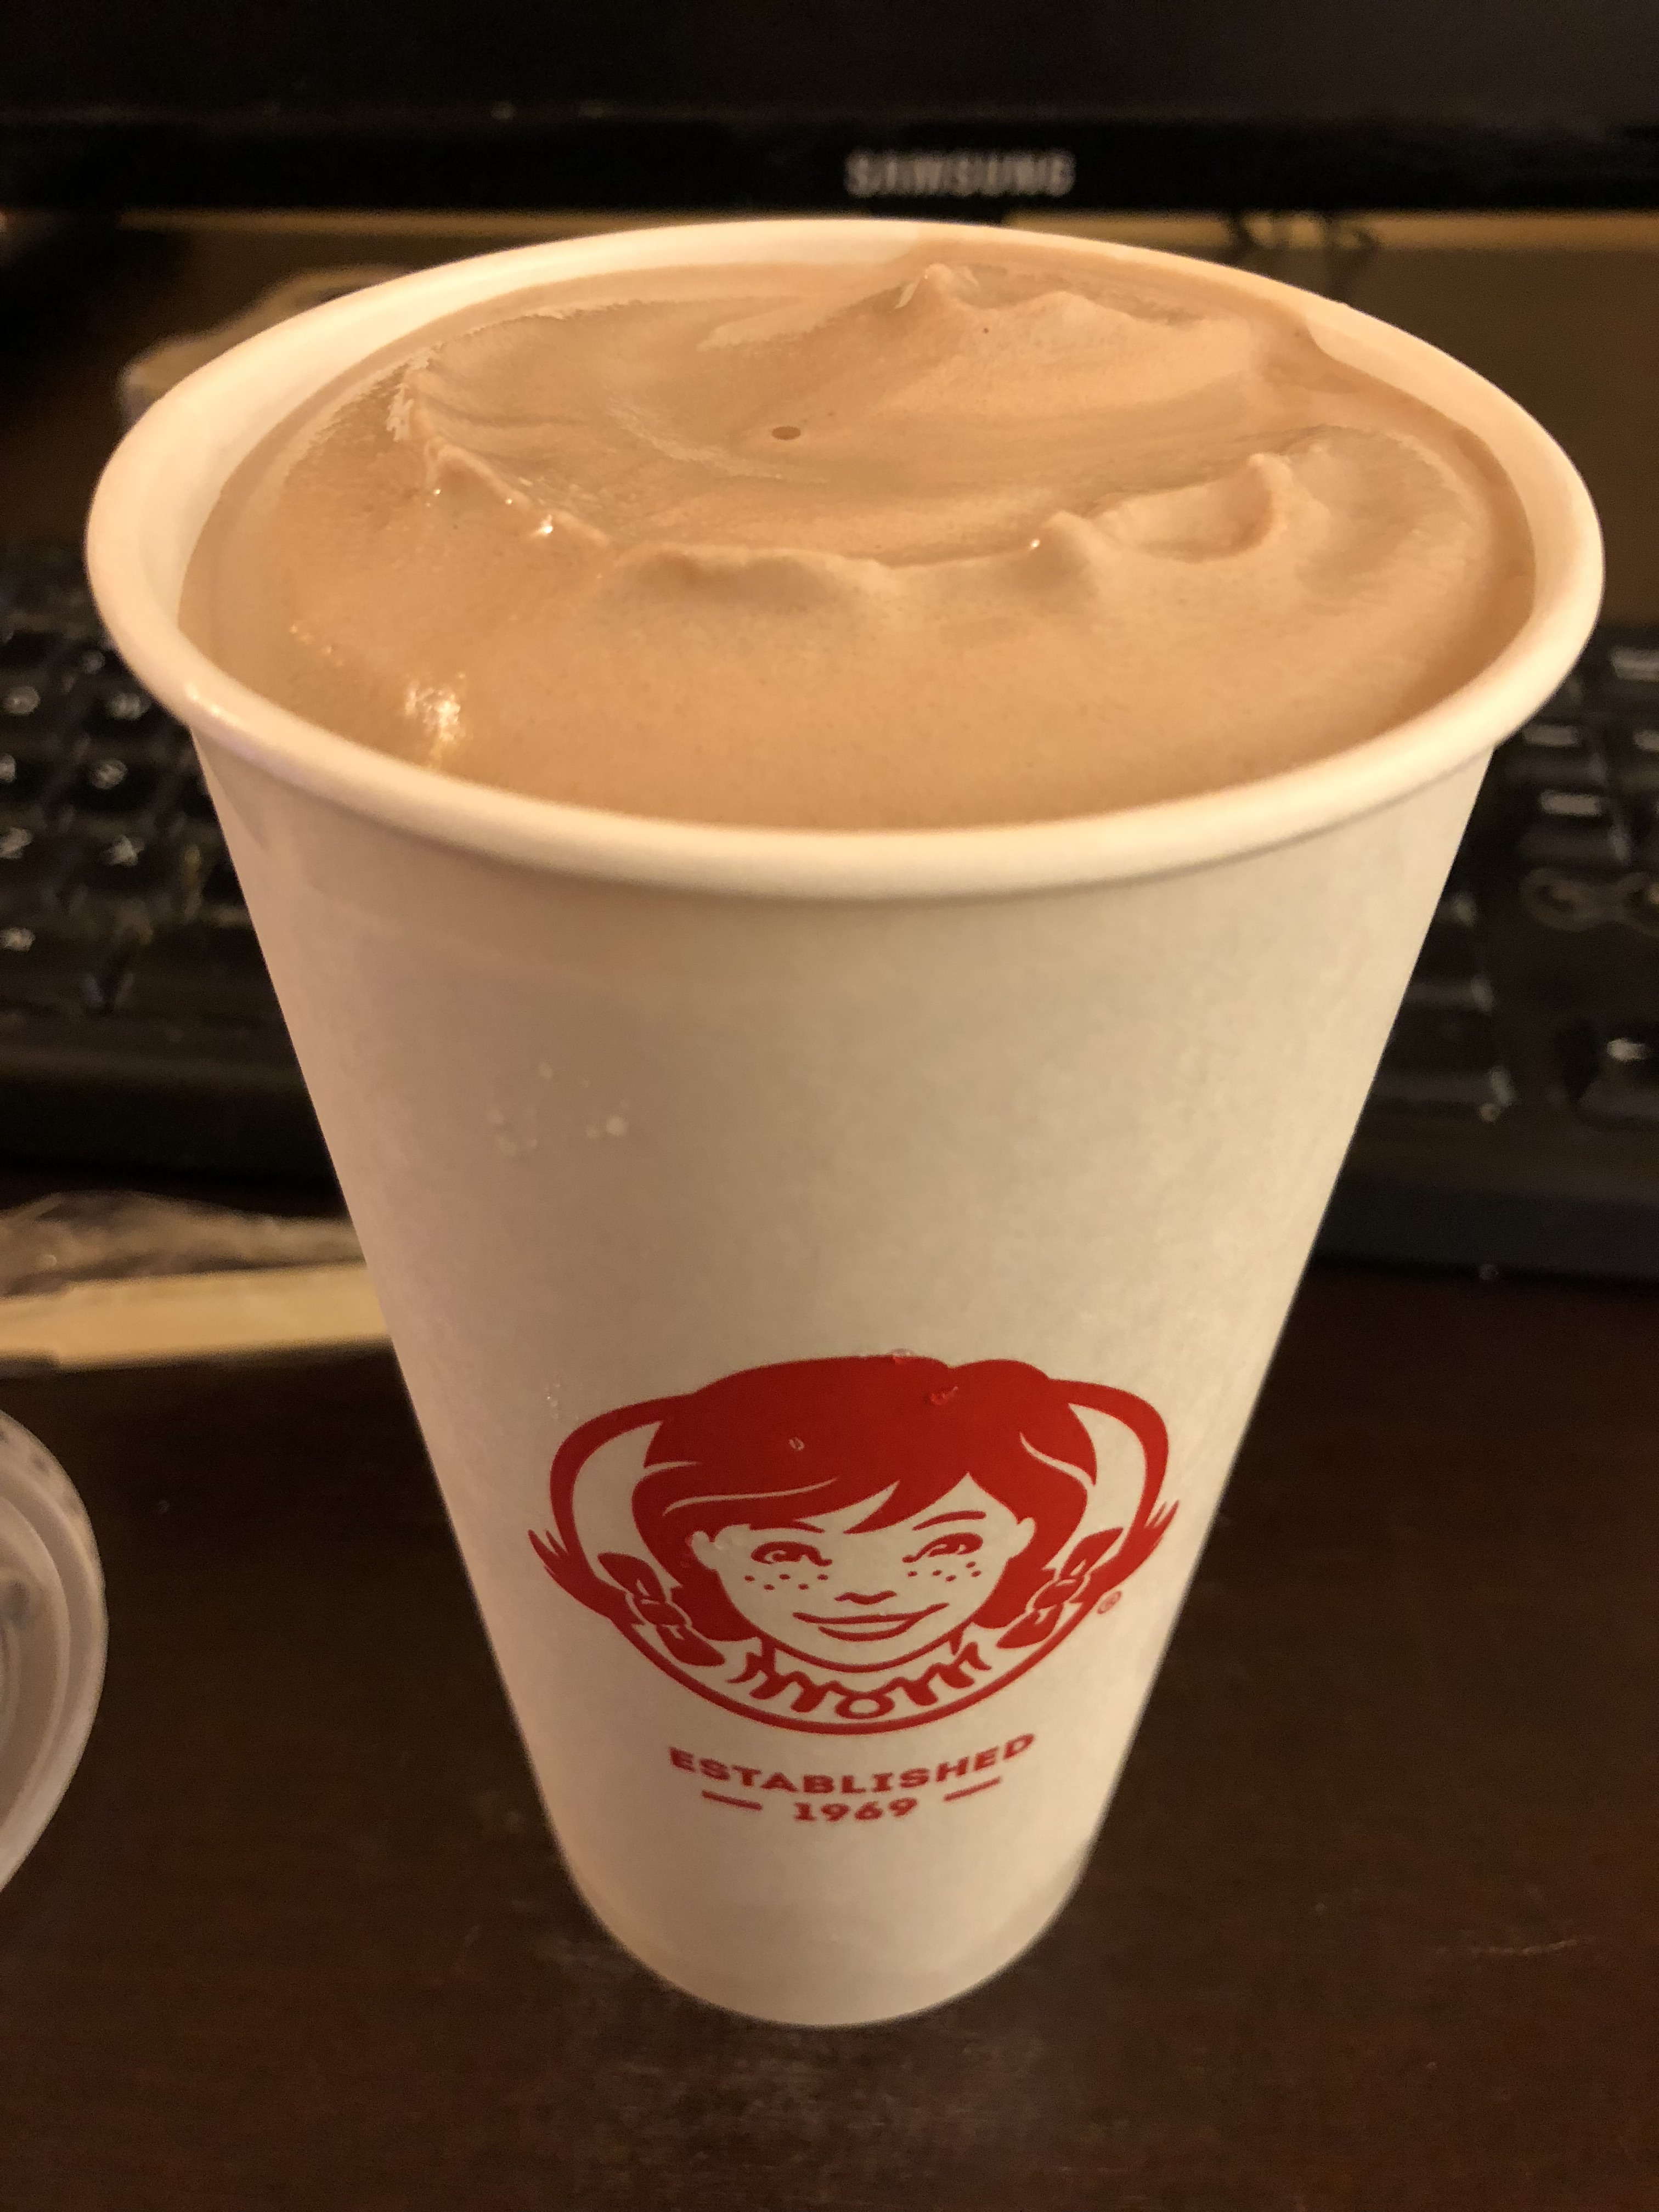 graphic about Wendy's Printable Application called Frosty (frozen dairy dessert) - Wikipedia